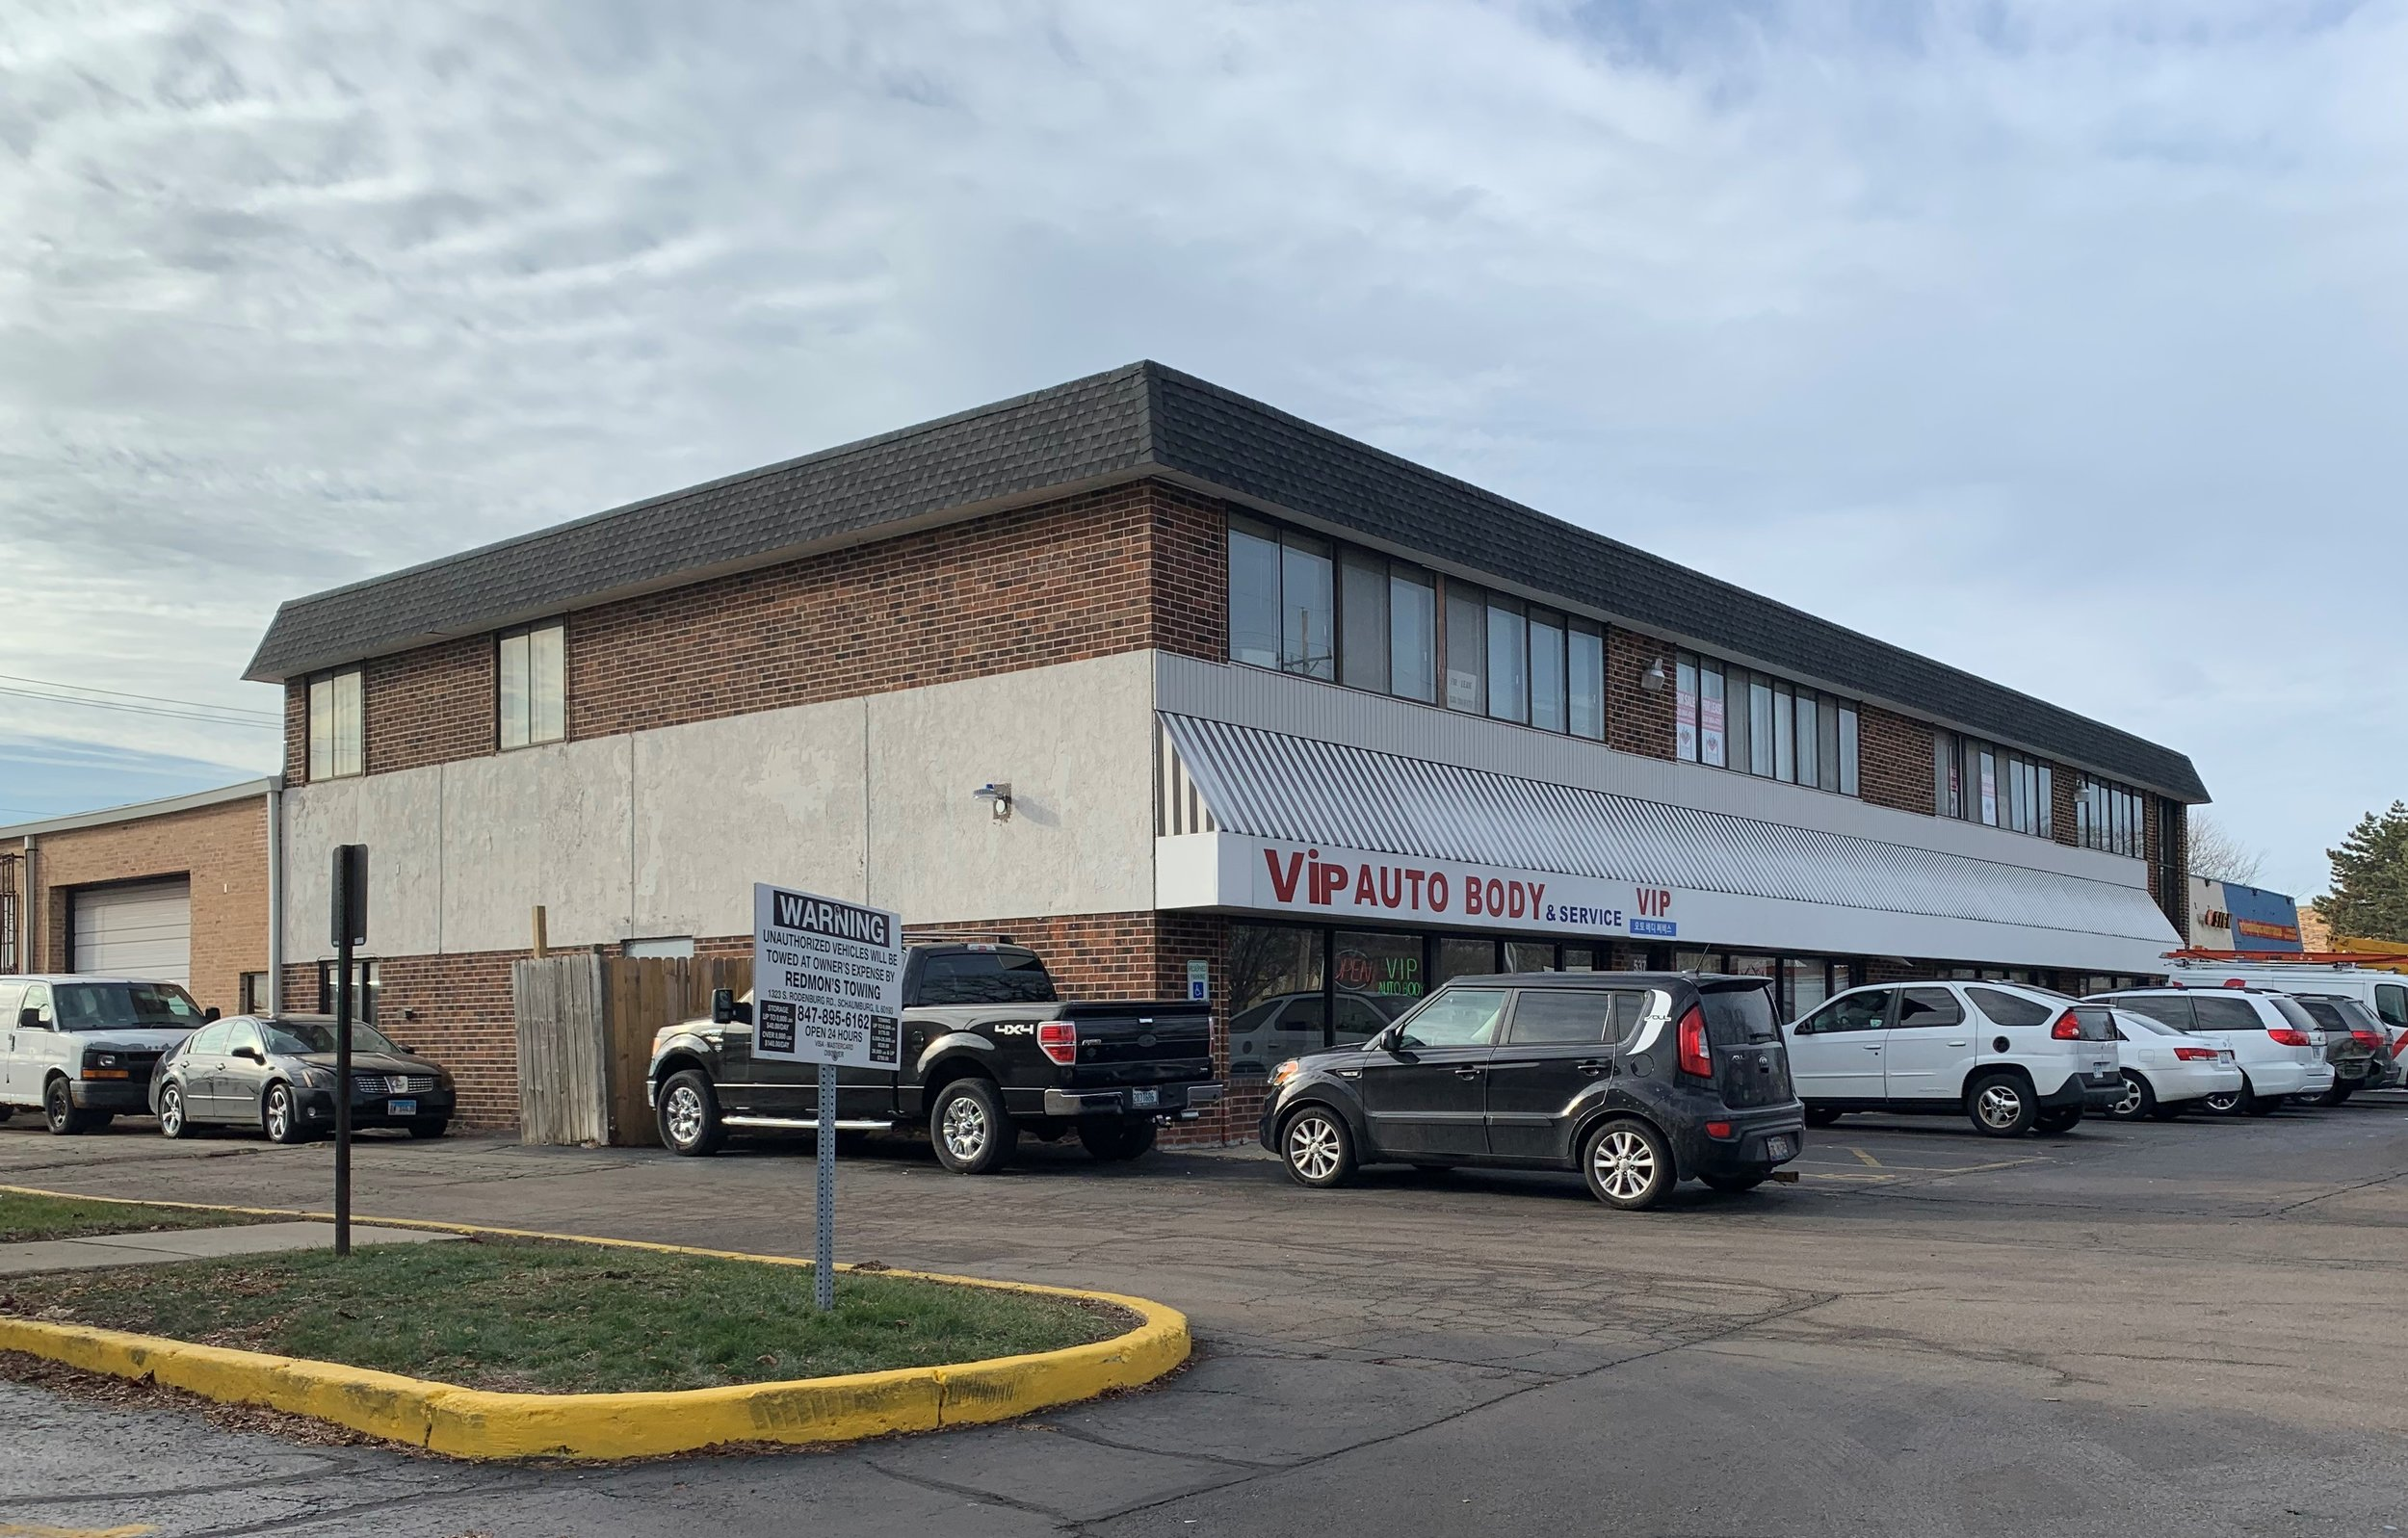 Industrial/Office Building - Location: Schaumburg, ILPrice: $1,050,000Comments: 25K S.F. Industrial/Office building